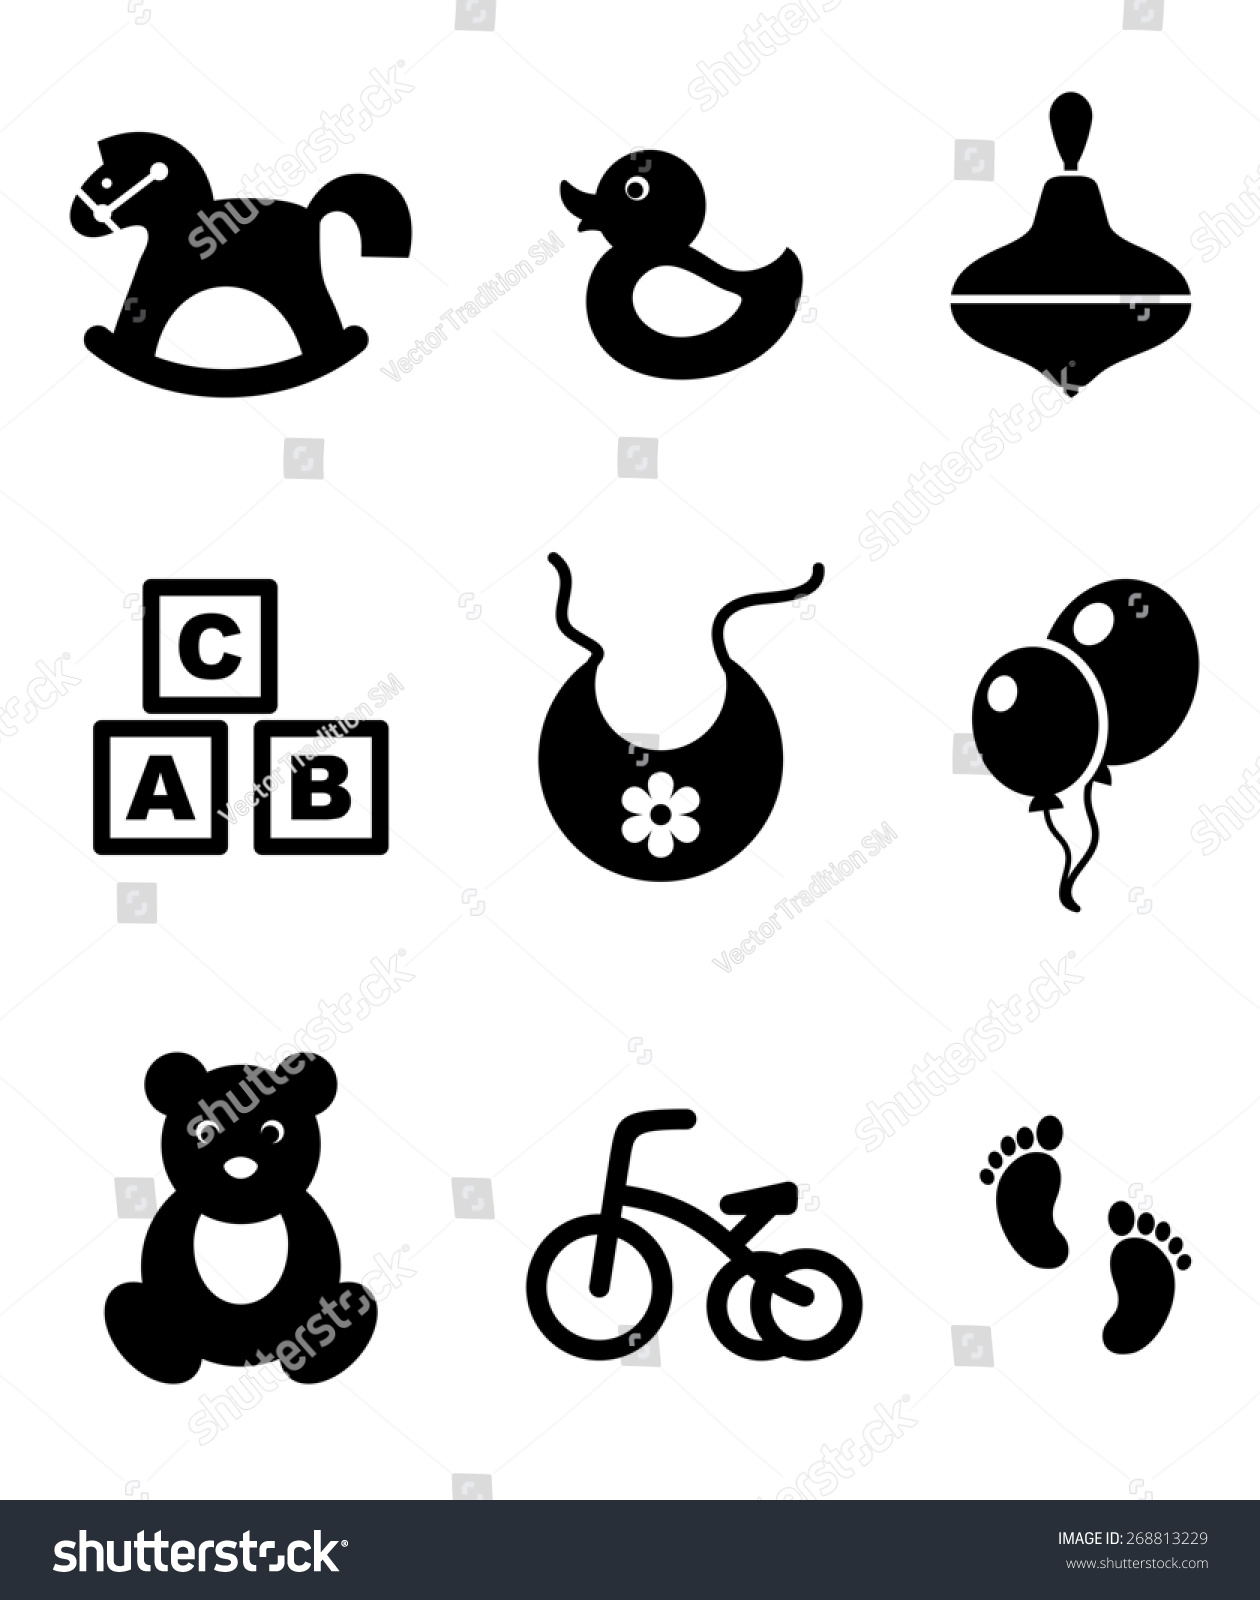 Nine Different Ways You Can Put Your Goals In Writing: Set Nine Different Black White Baby Stock Illustration